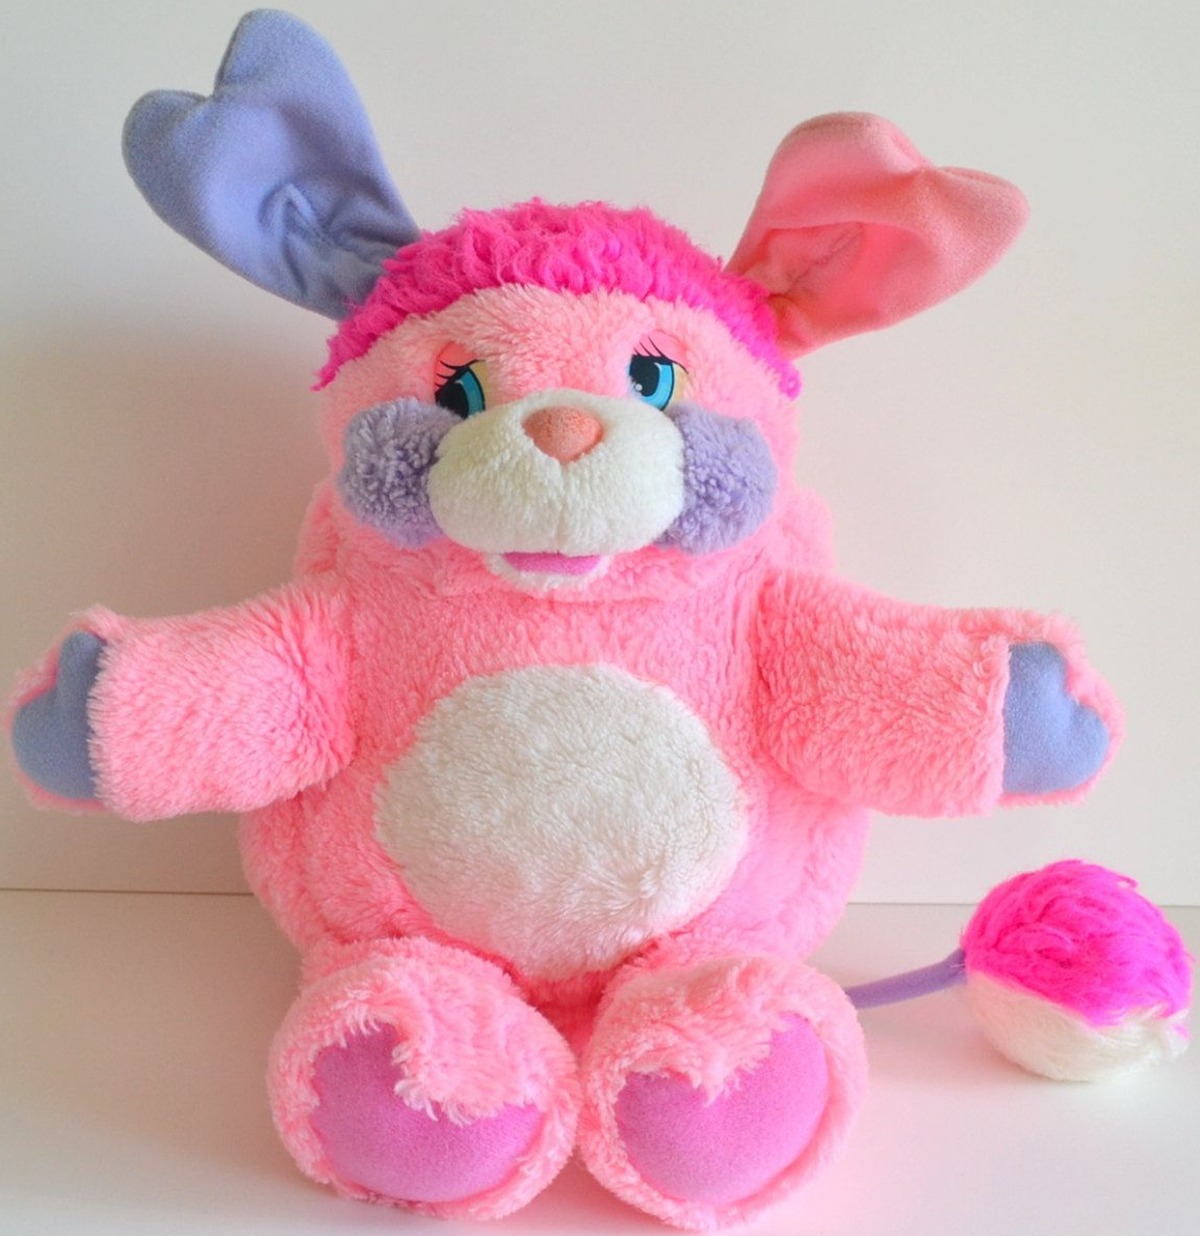 11 27 QUIZ: How Many Of These 15 Cuddly Toys Did YOU Own As A Child?